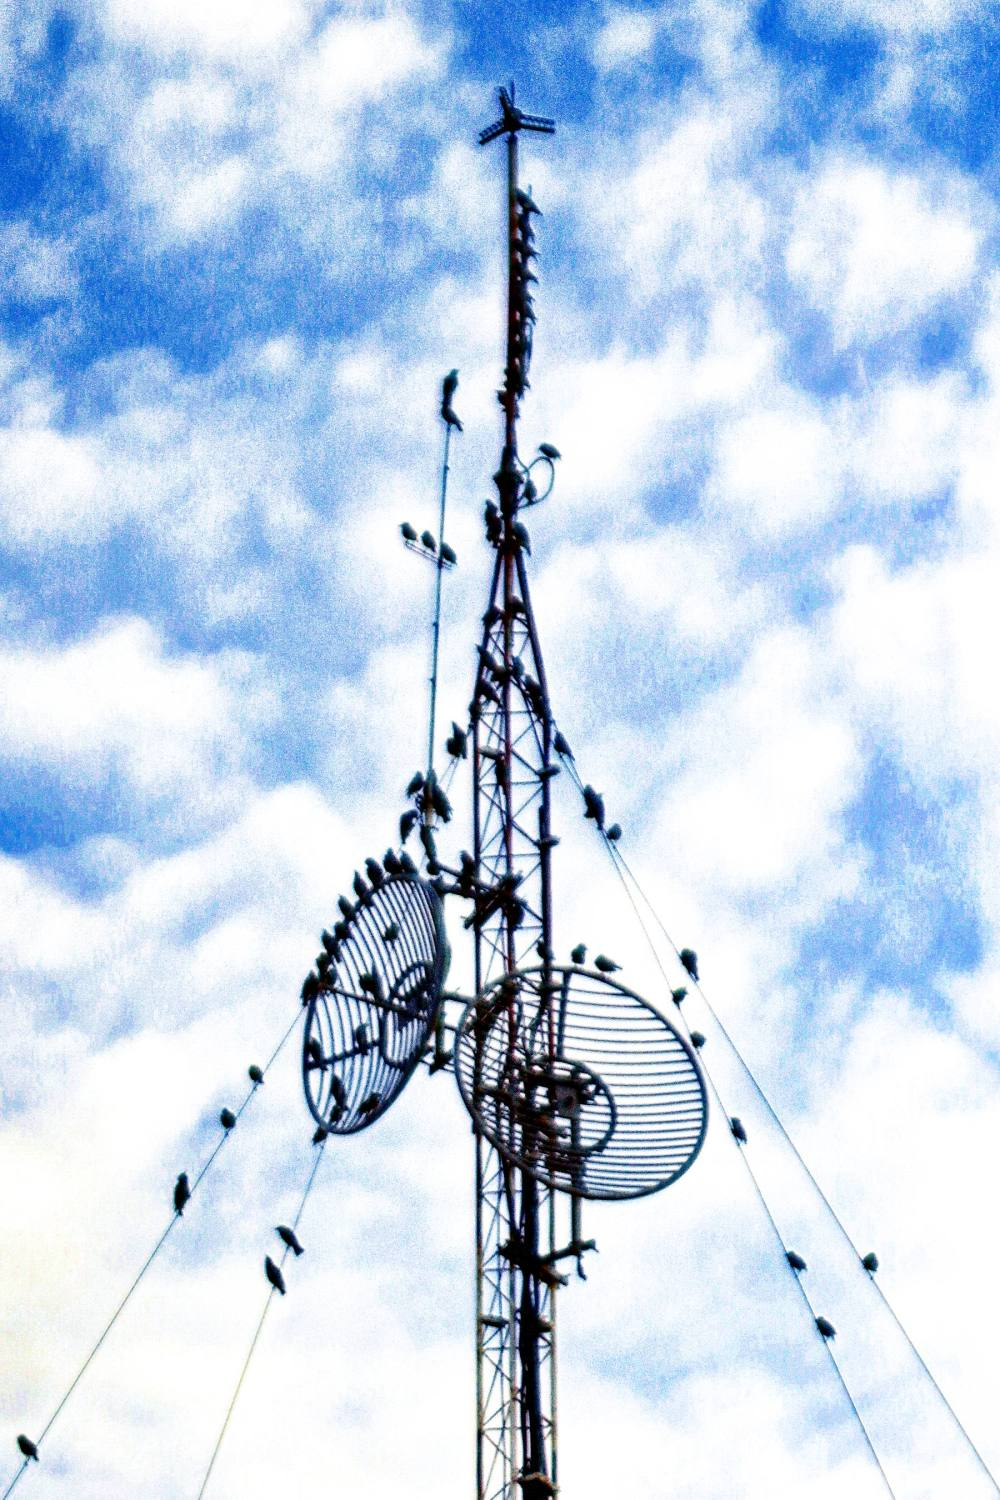 Might be magpies on an antenna, slightly overcast.